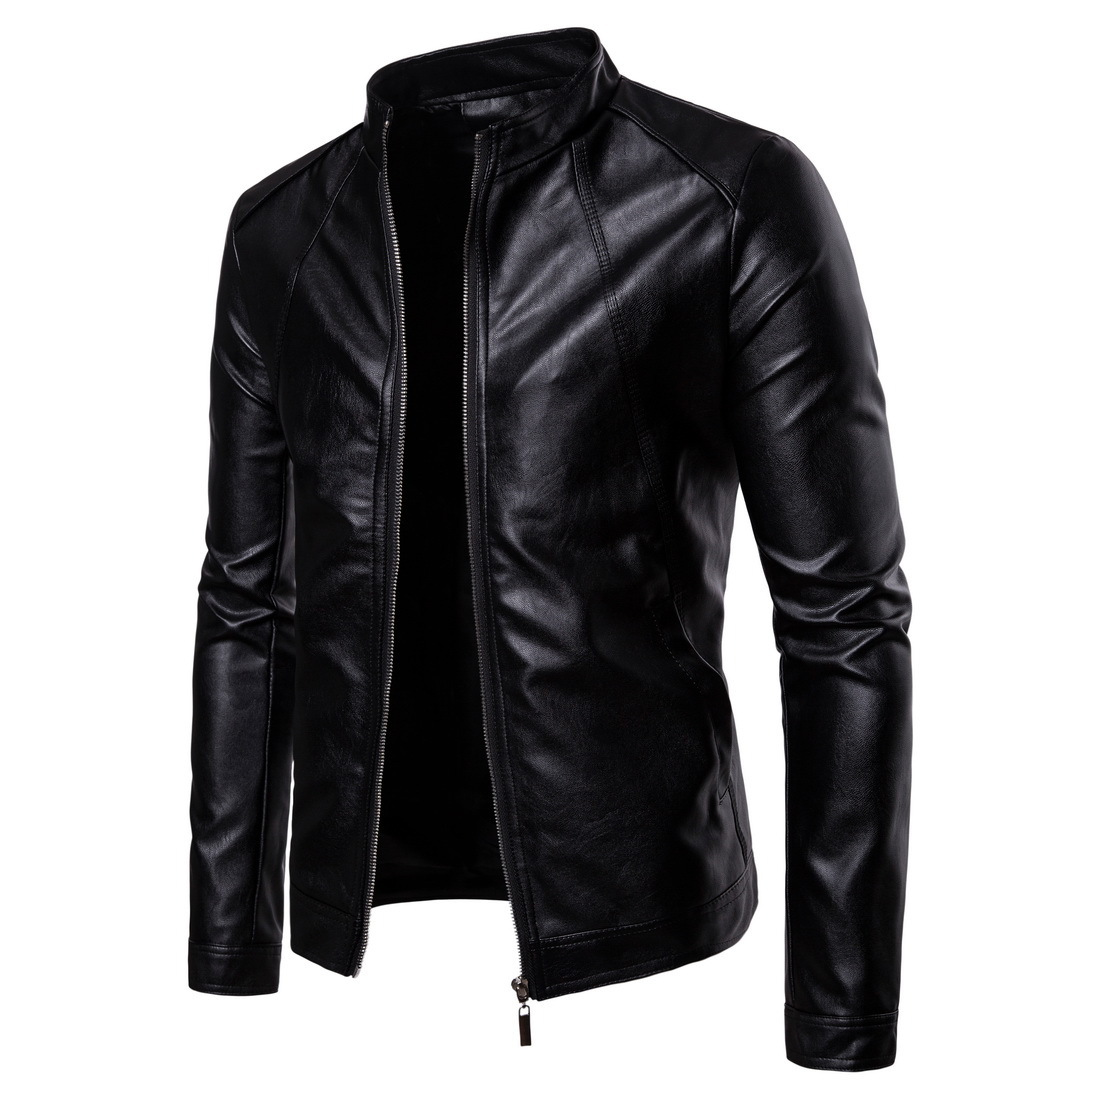 Fall 2020 New Collar Male Locomotive Leather Fashion Pure Color Washed PU Leather Jacket